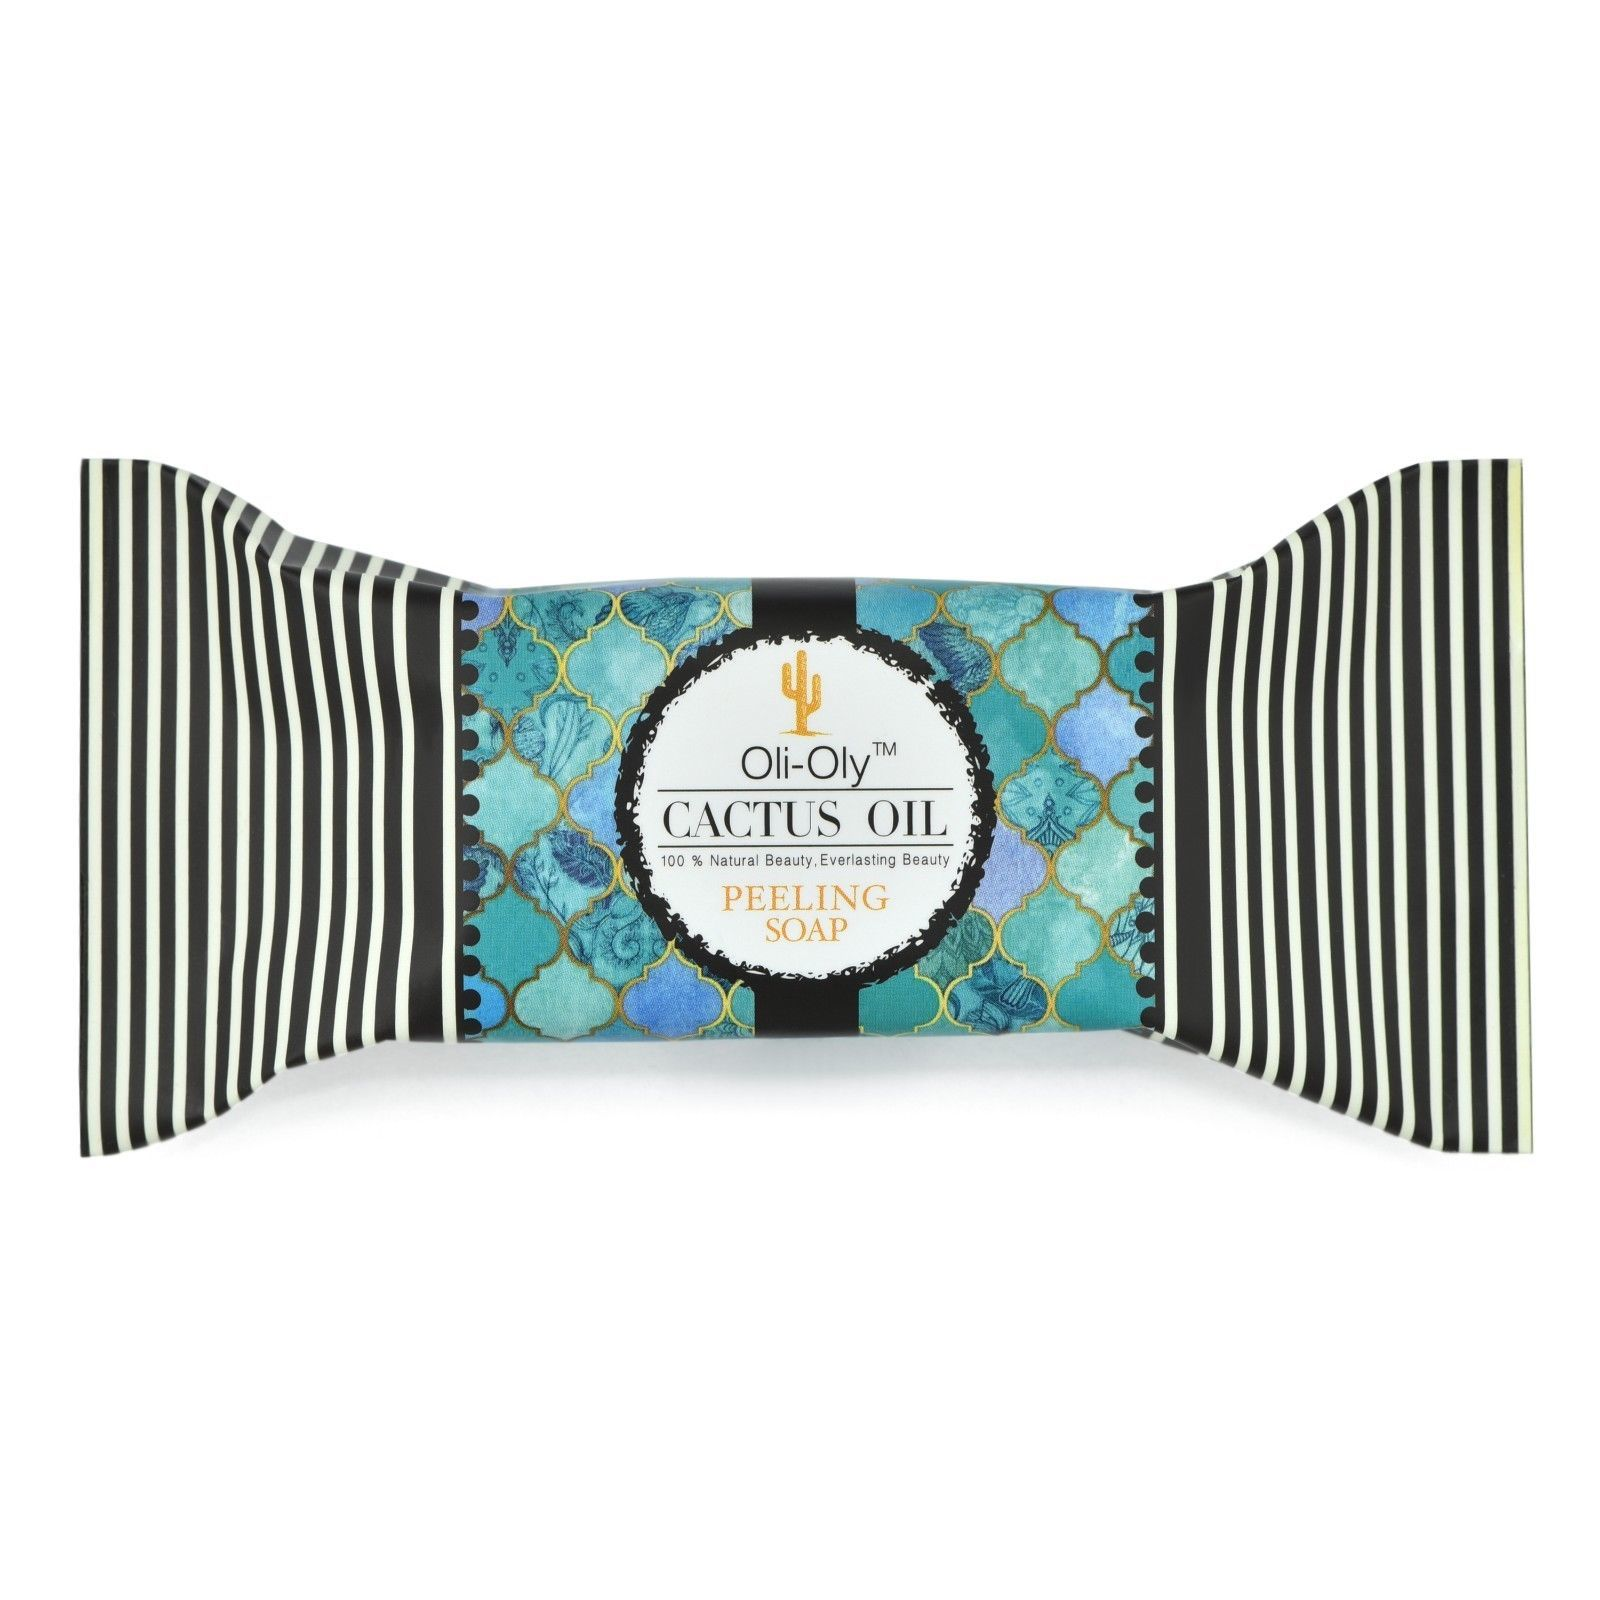 Natural Peeling Soap with Moroccan Cactus Oil 50 g by Oli-Oly - $3.25 - $17.55